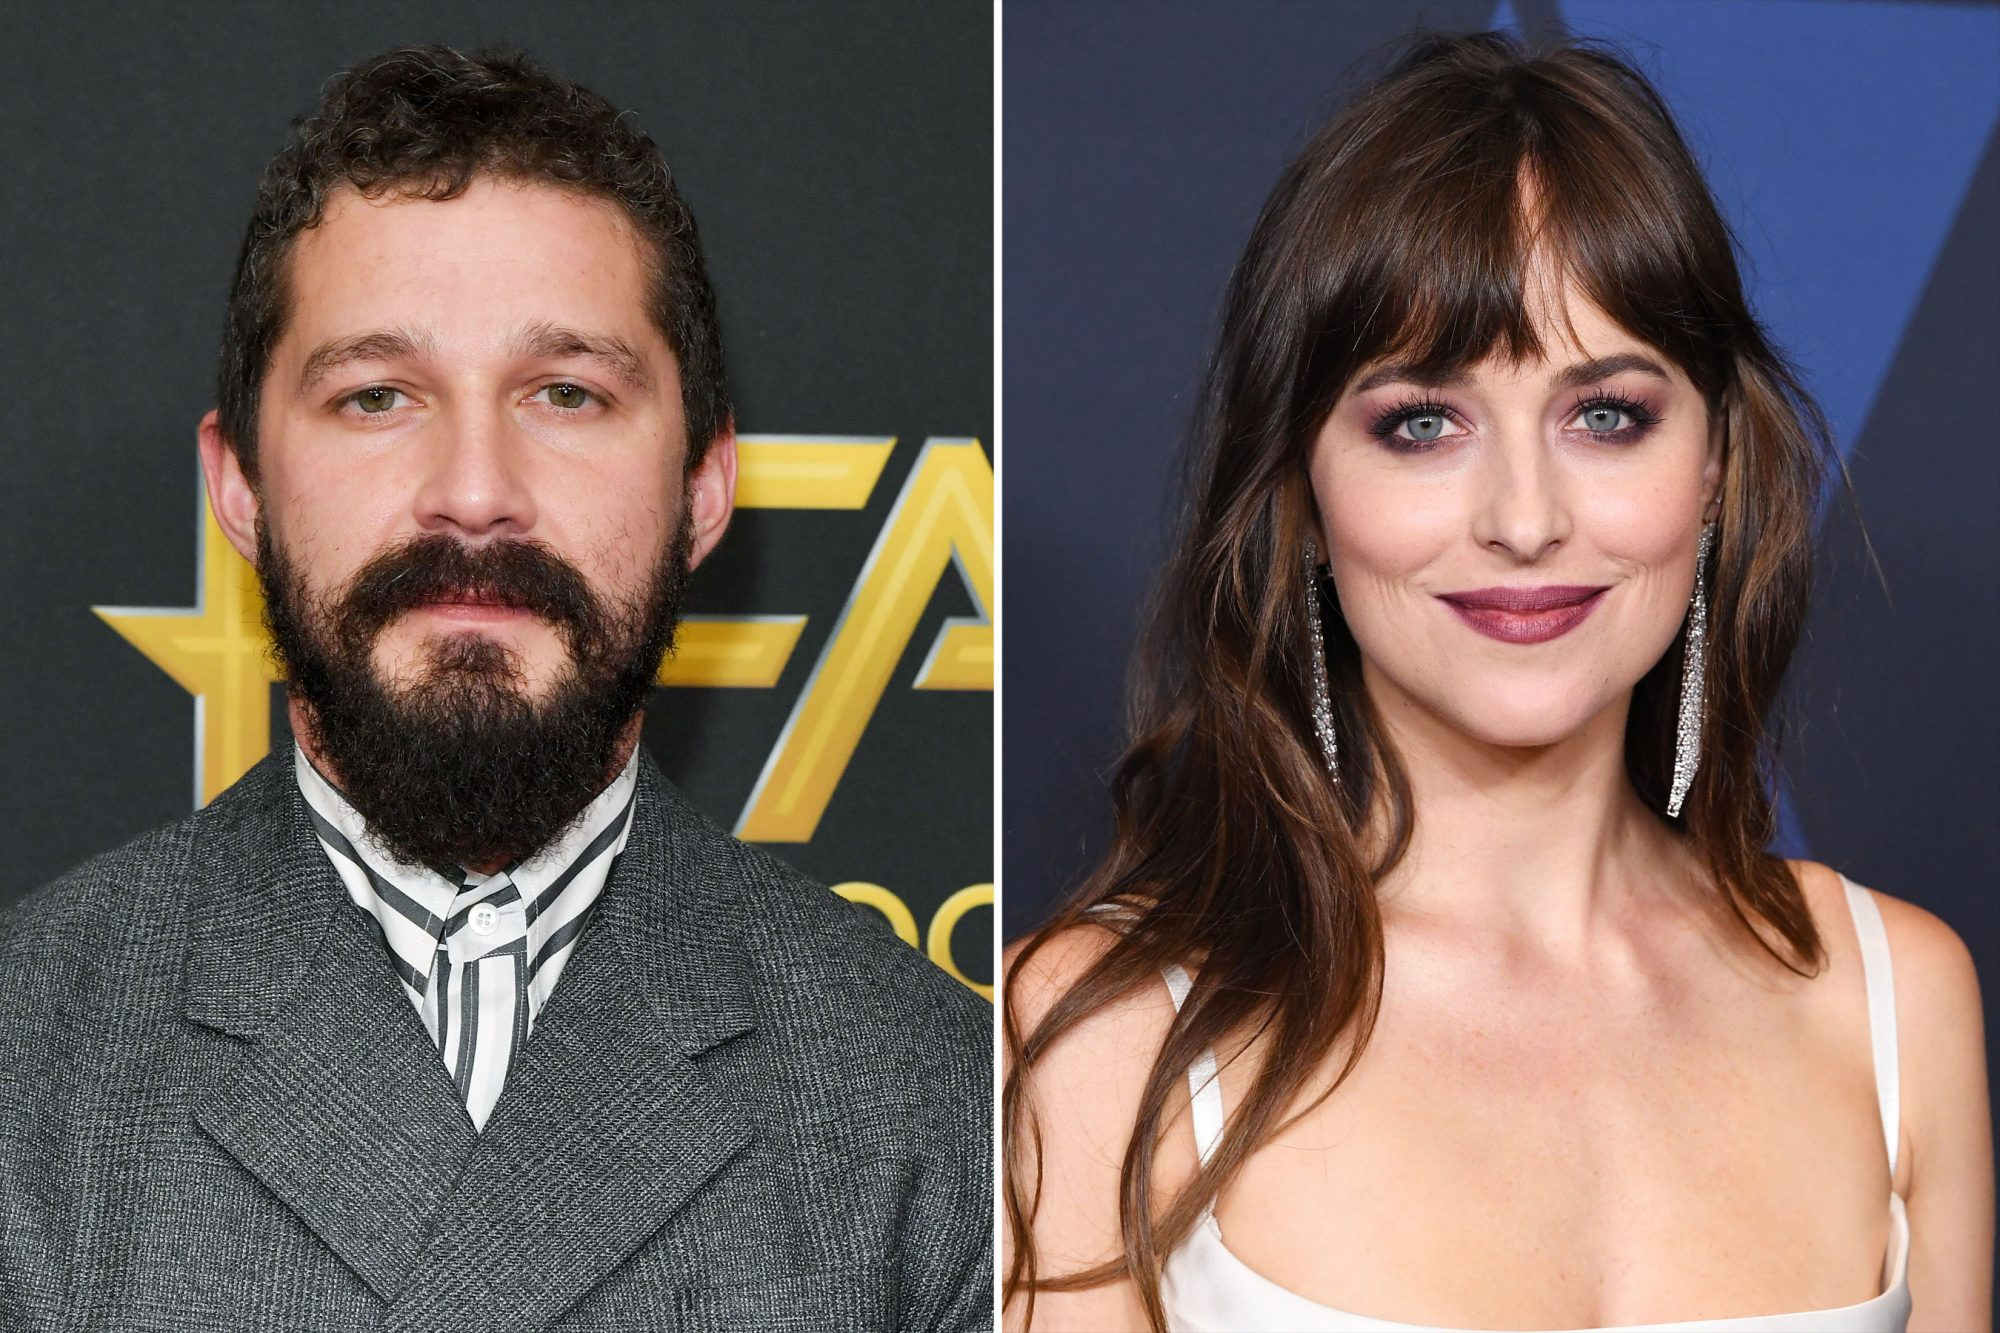 Shia LaBeouf Dakota Johnson